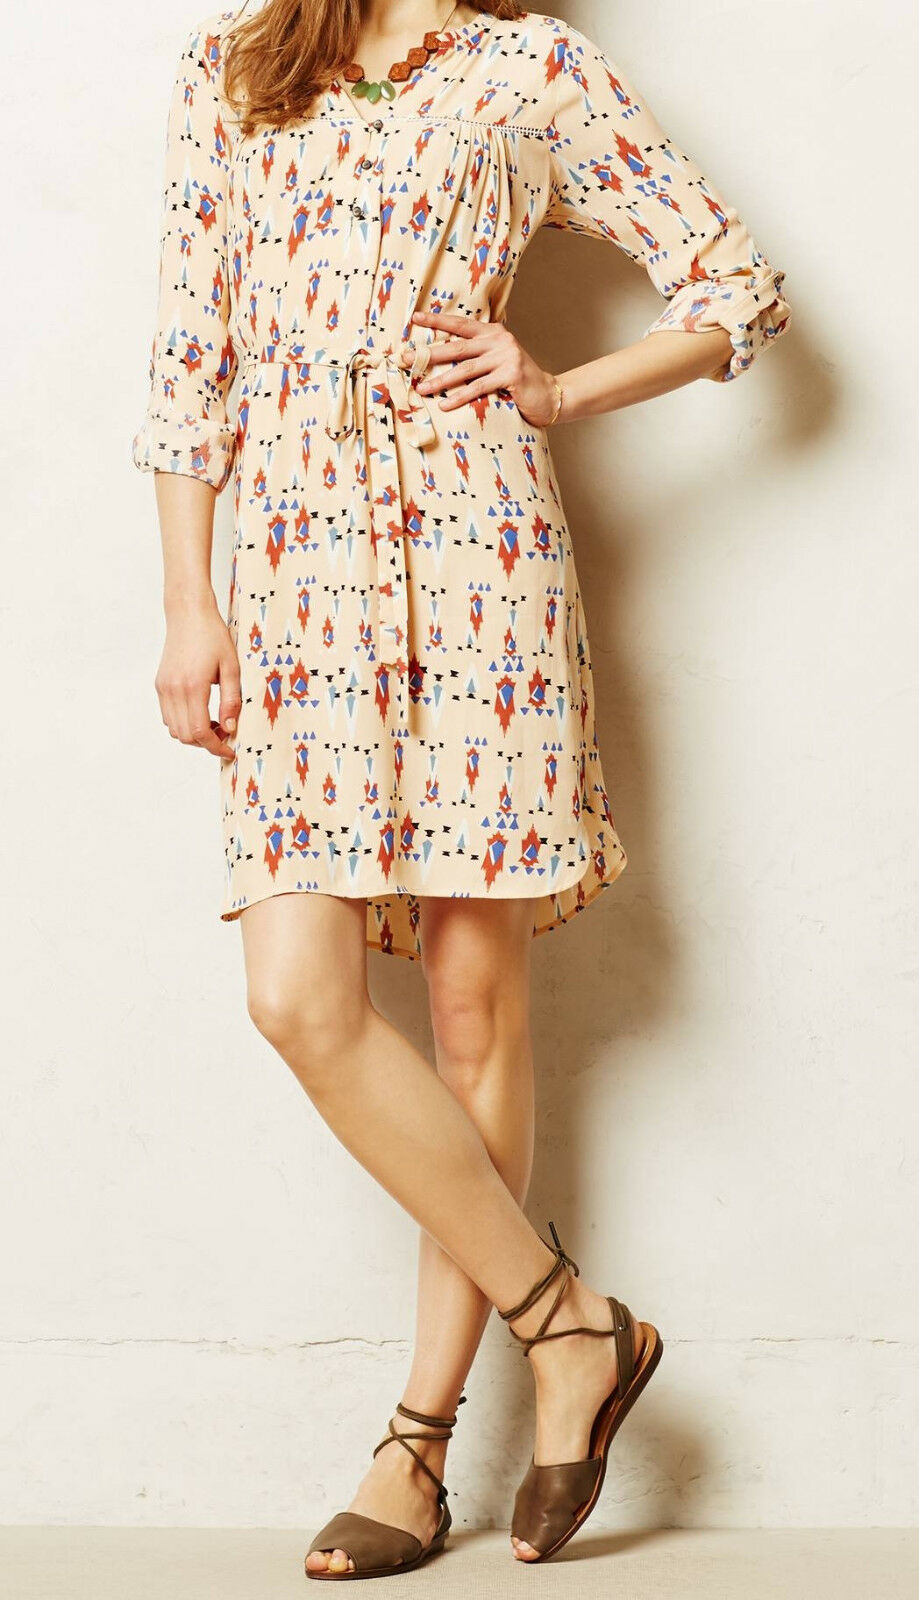 Dolan Wanderlust Dress Größe Medium Neutral Motif NW ANTHROPOLOGIE Tag